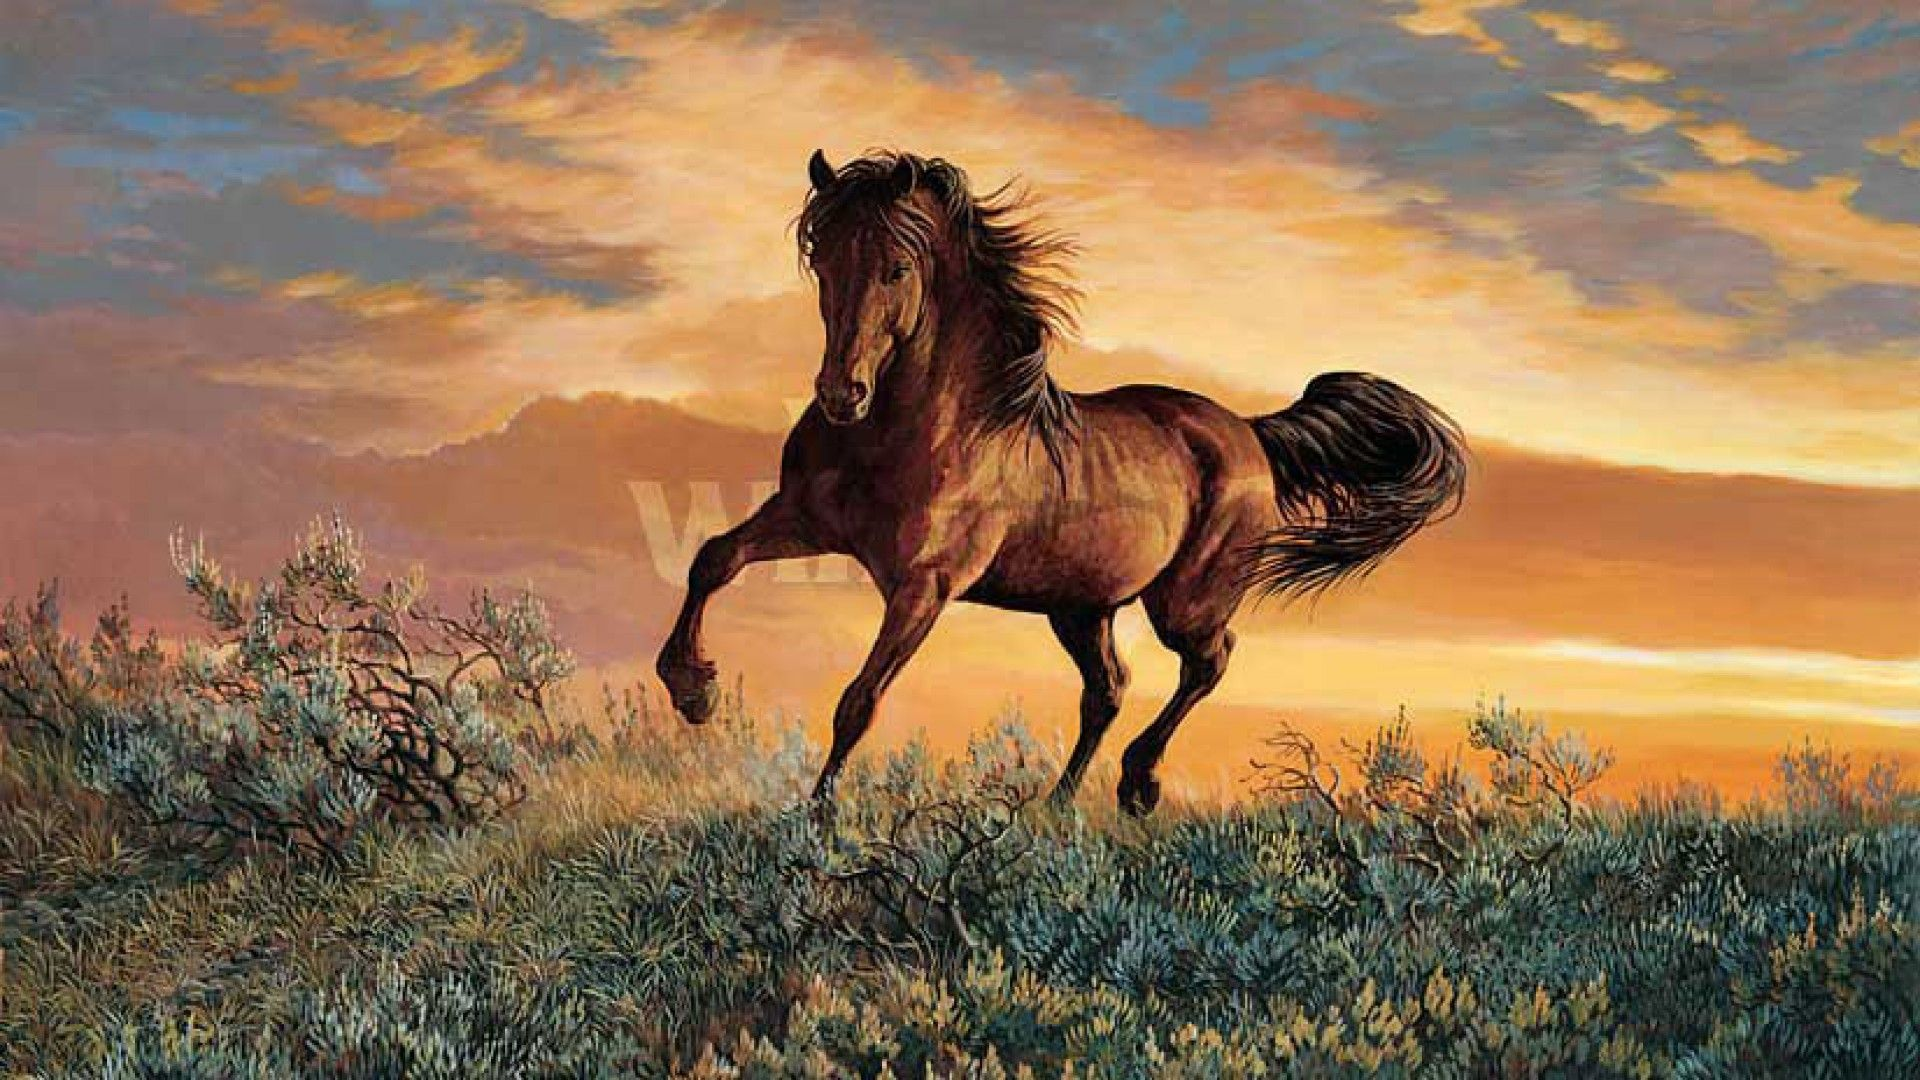 Beautiful Wallpaper Horse National Geographic - 72bc28555ec3a518ce30f152872c7850  Picture_206632.jpg